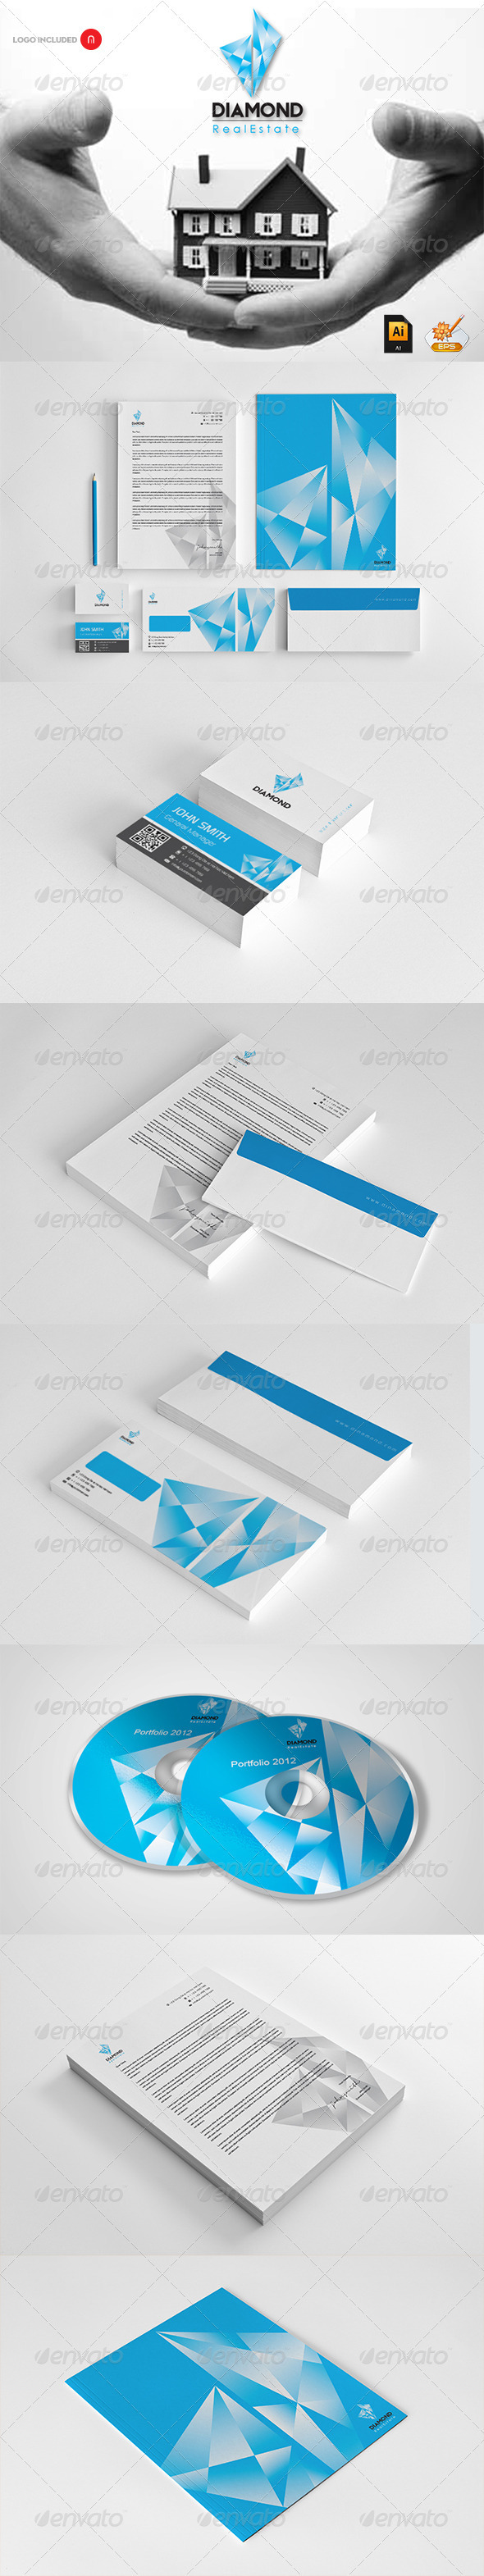 Diamond Real Estate Corporate Design - Stationery Print Templates